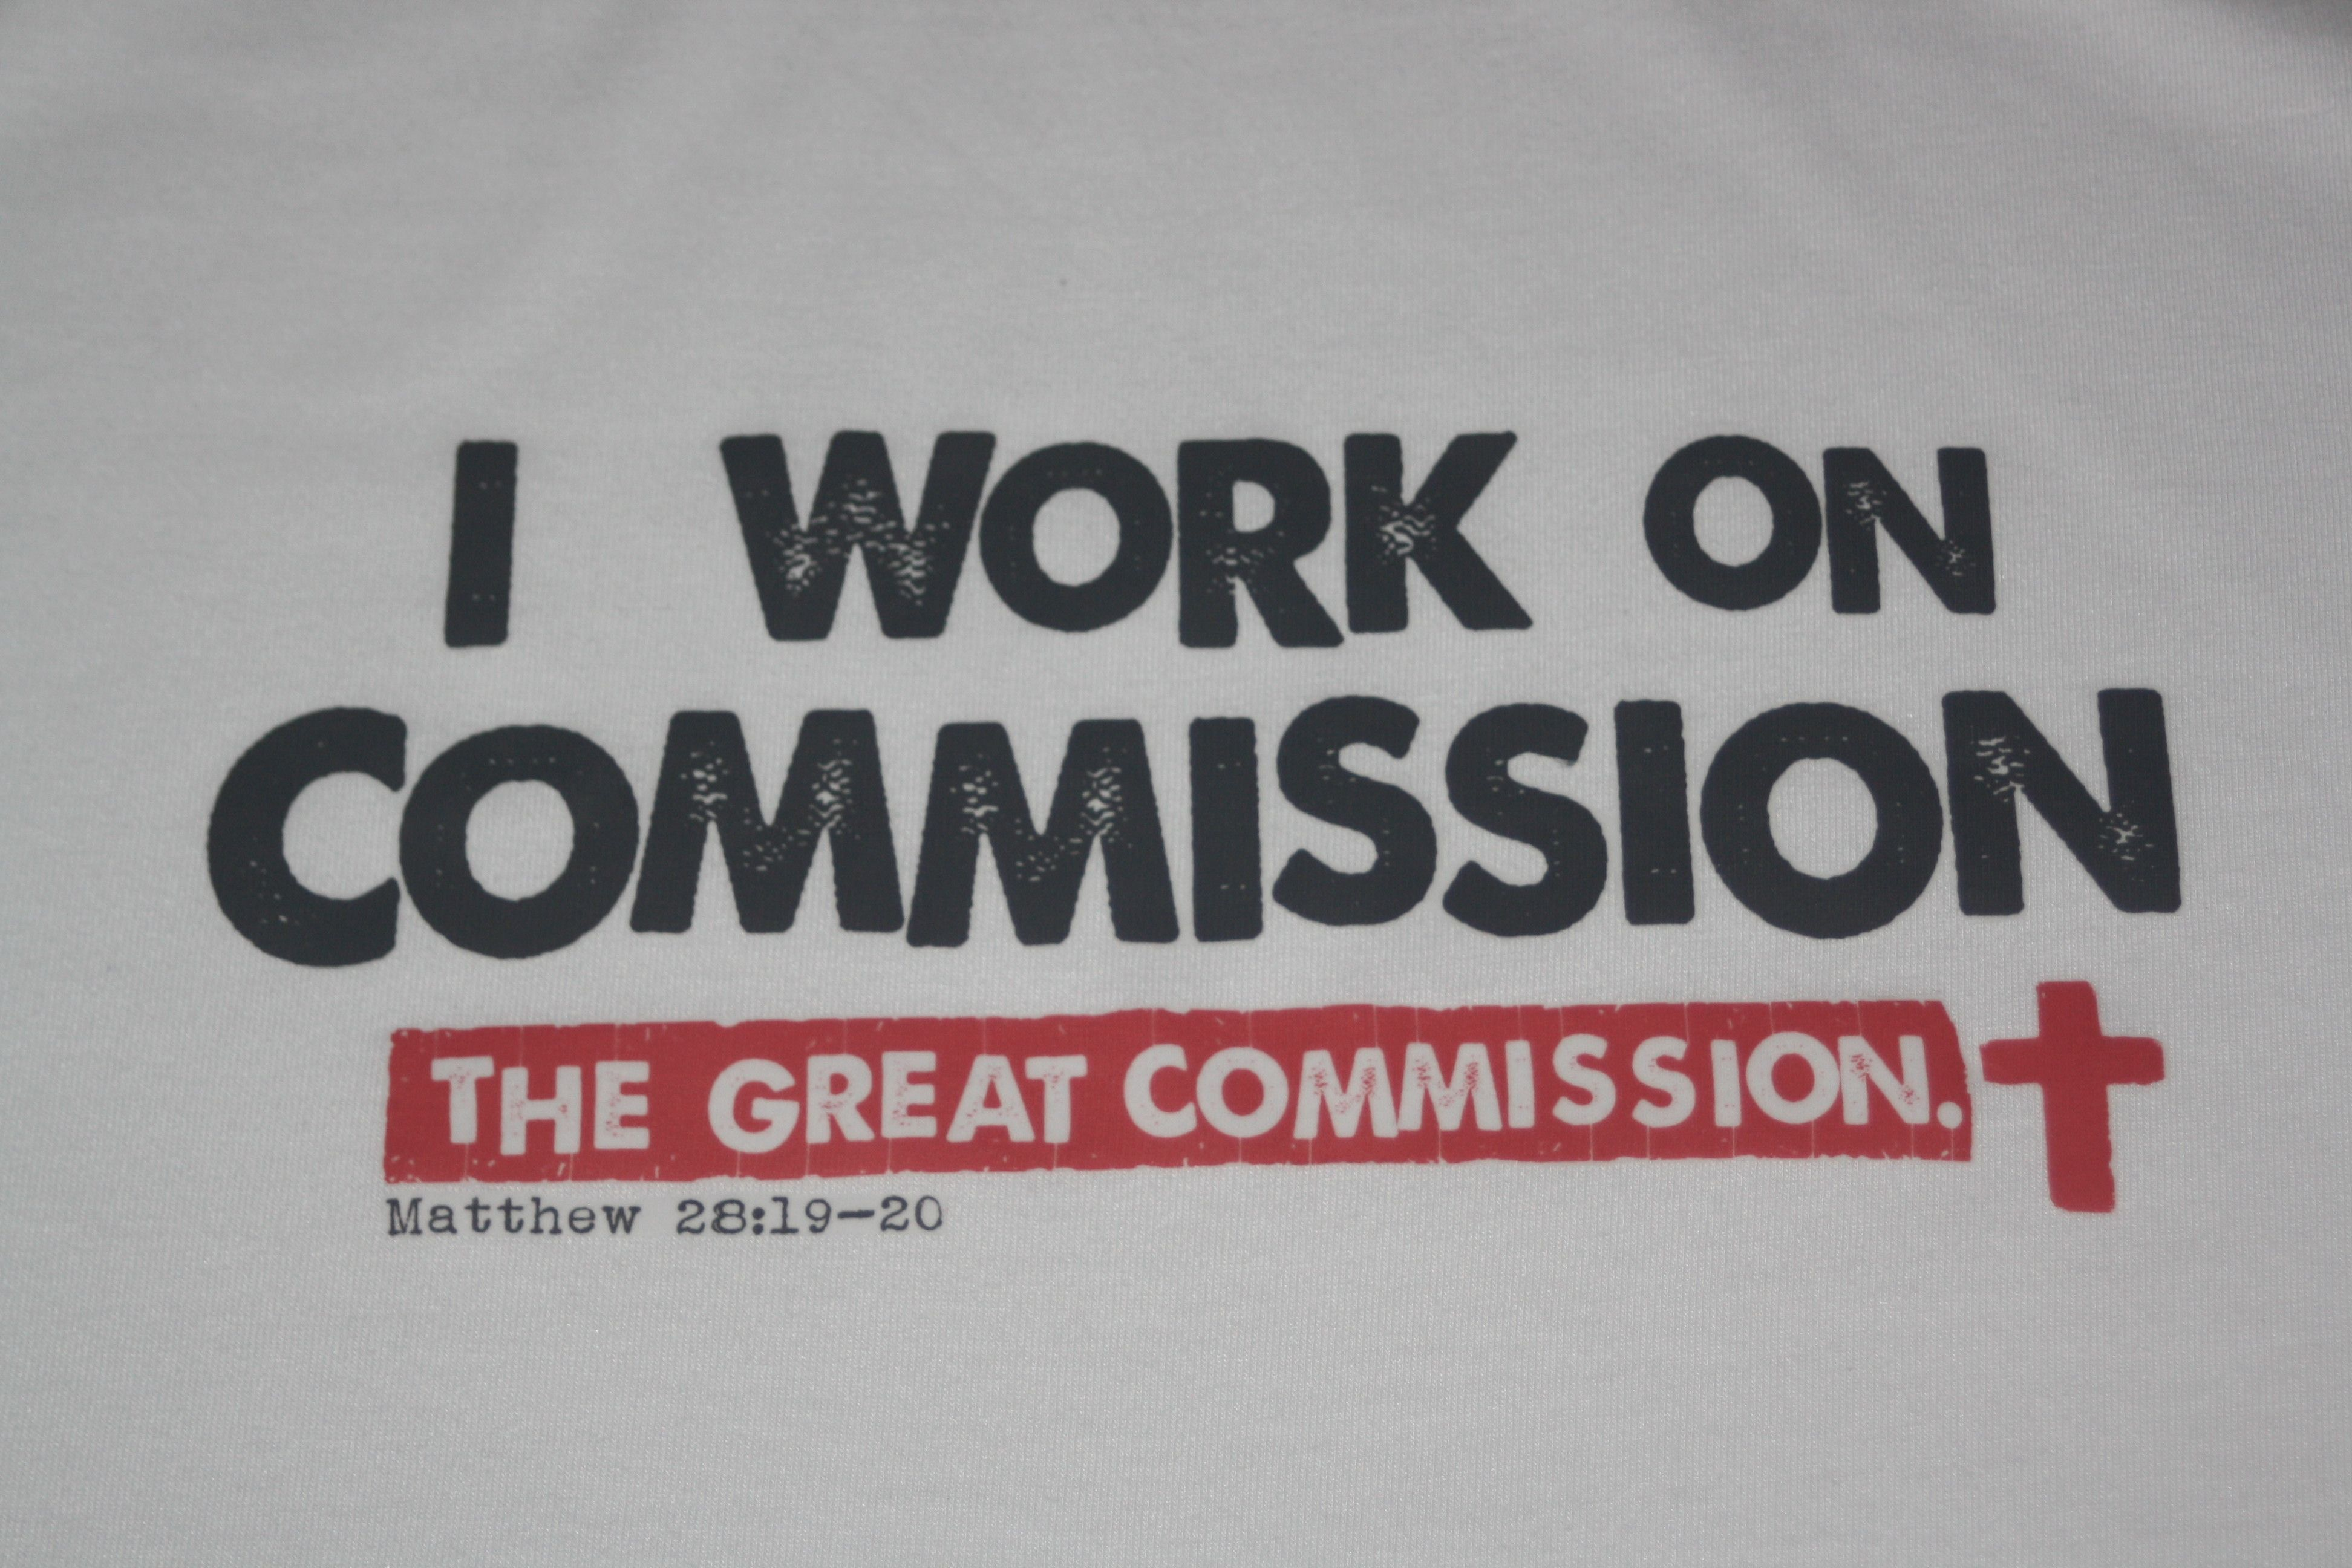 I work on commission, The Great Commission